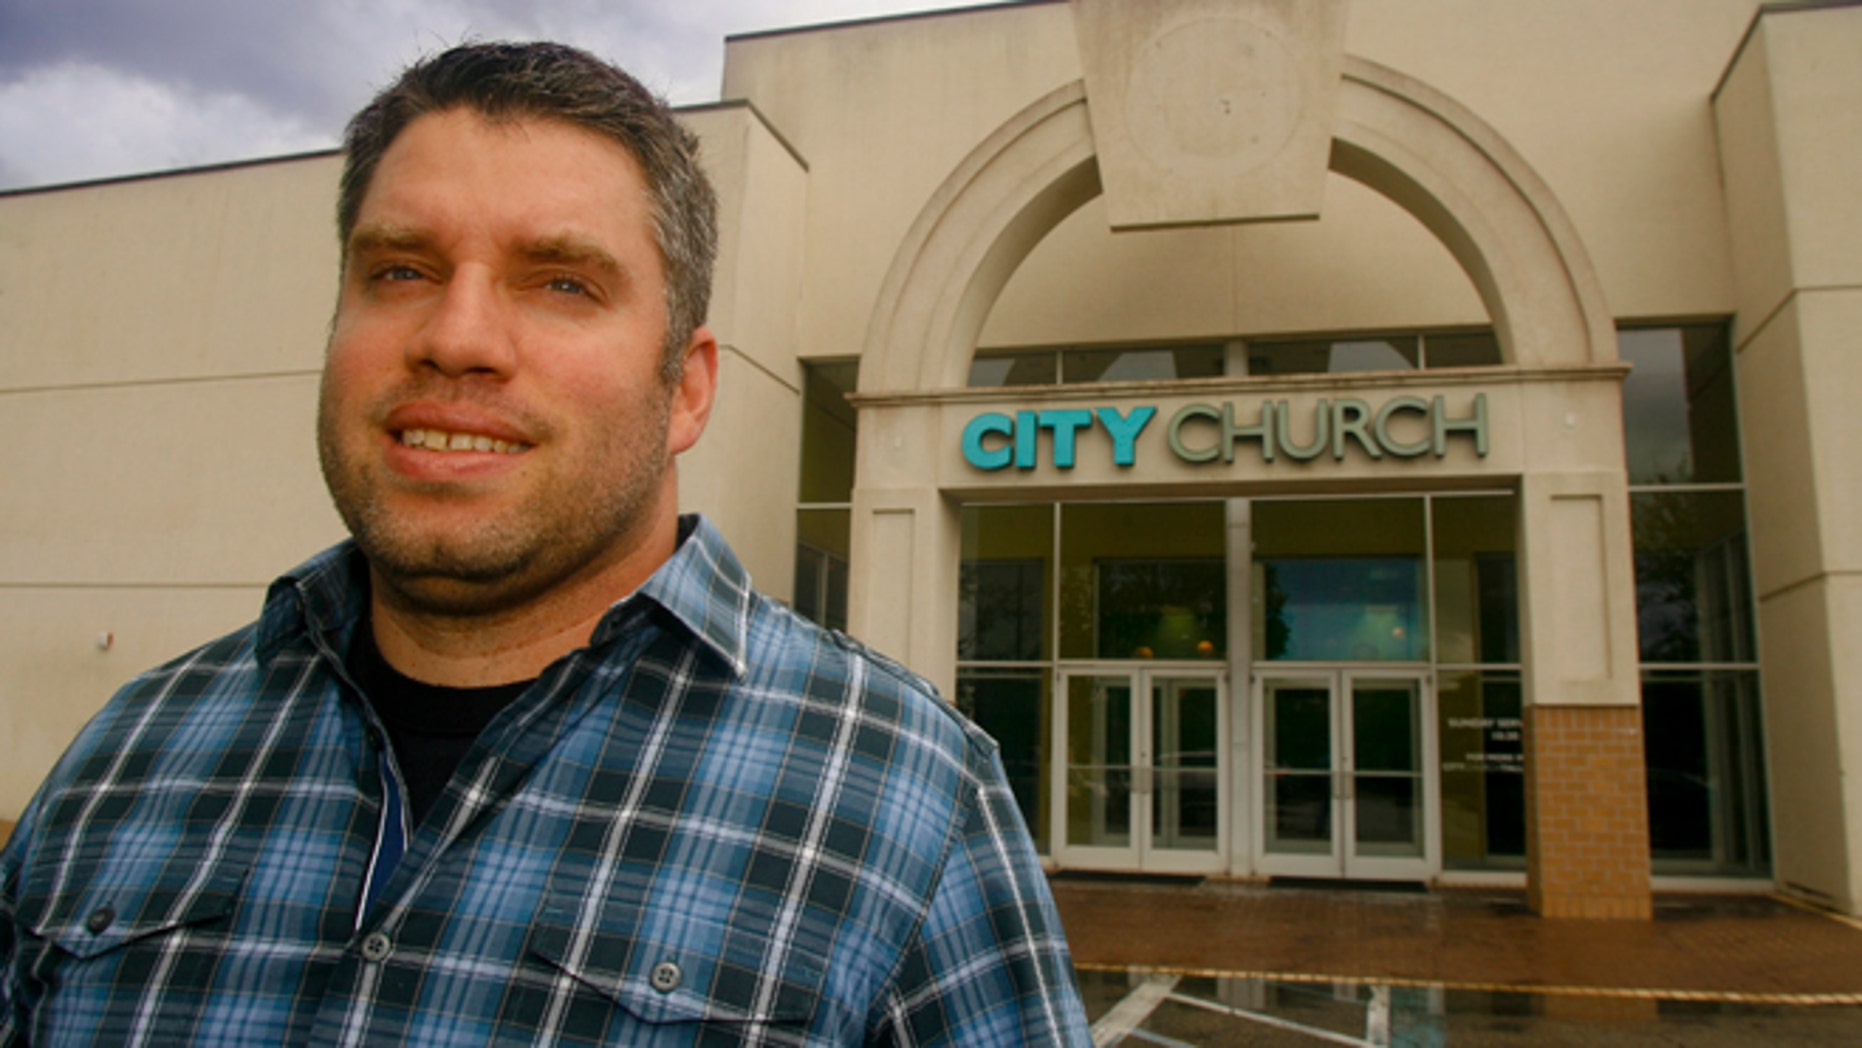 Aug 20, 2013: City Church of Tallahassee Pastor Dean Inserra stands outside his church in Tallahassee, Fla.